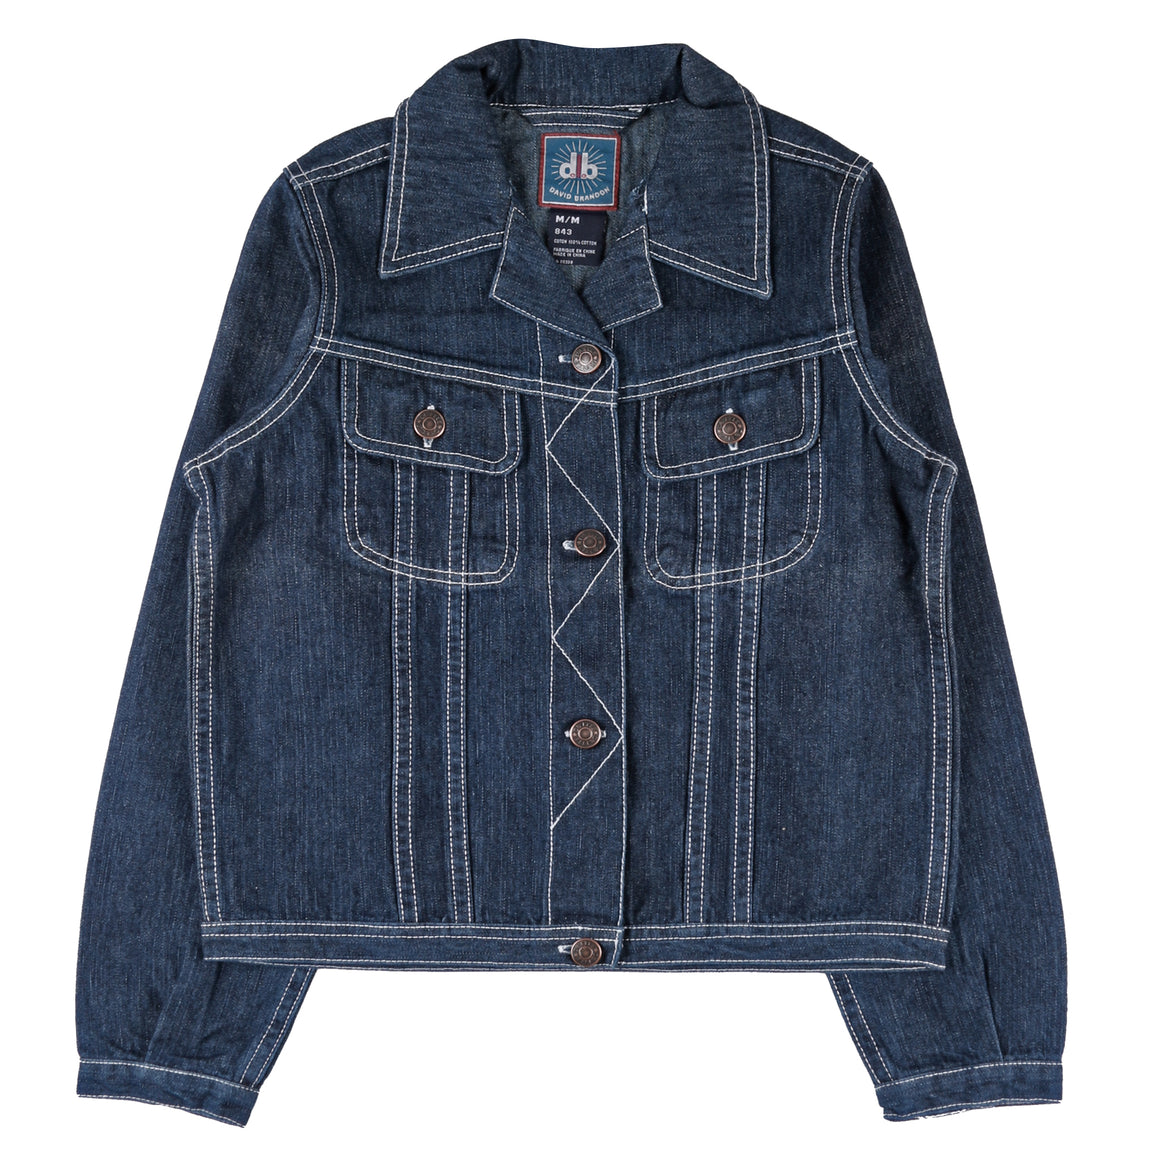 Junior Girl's Boho Denim Jacket